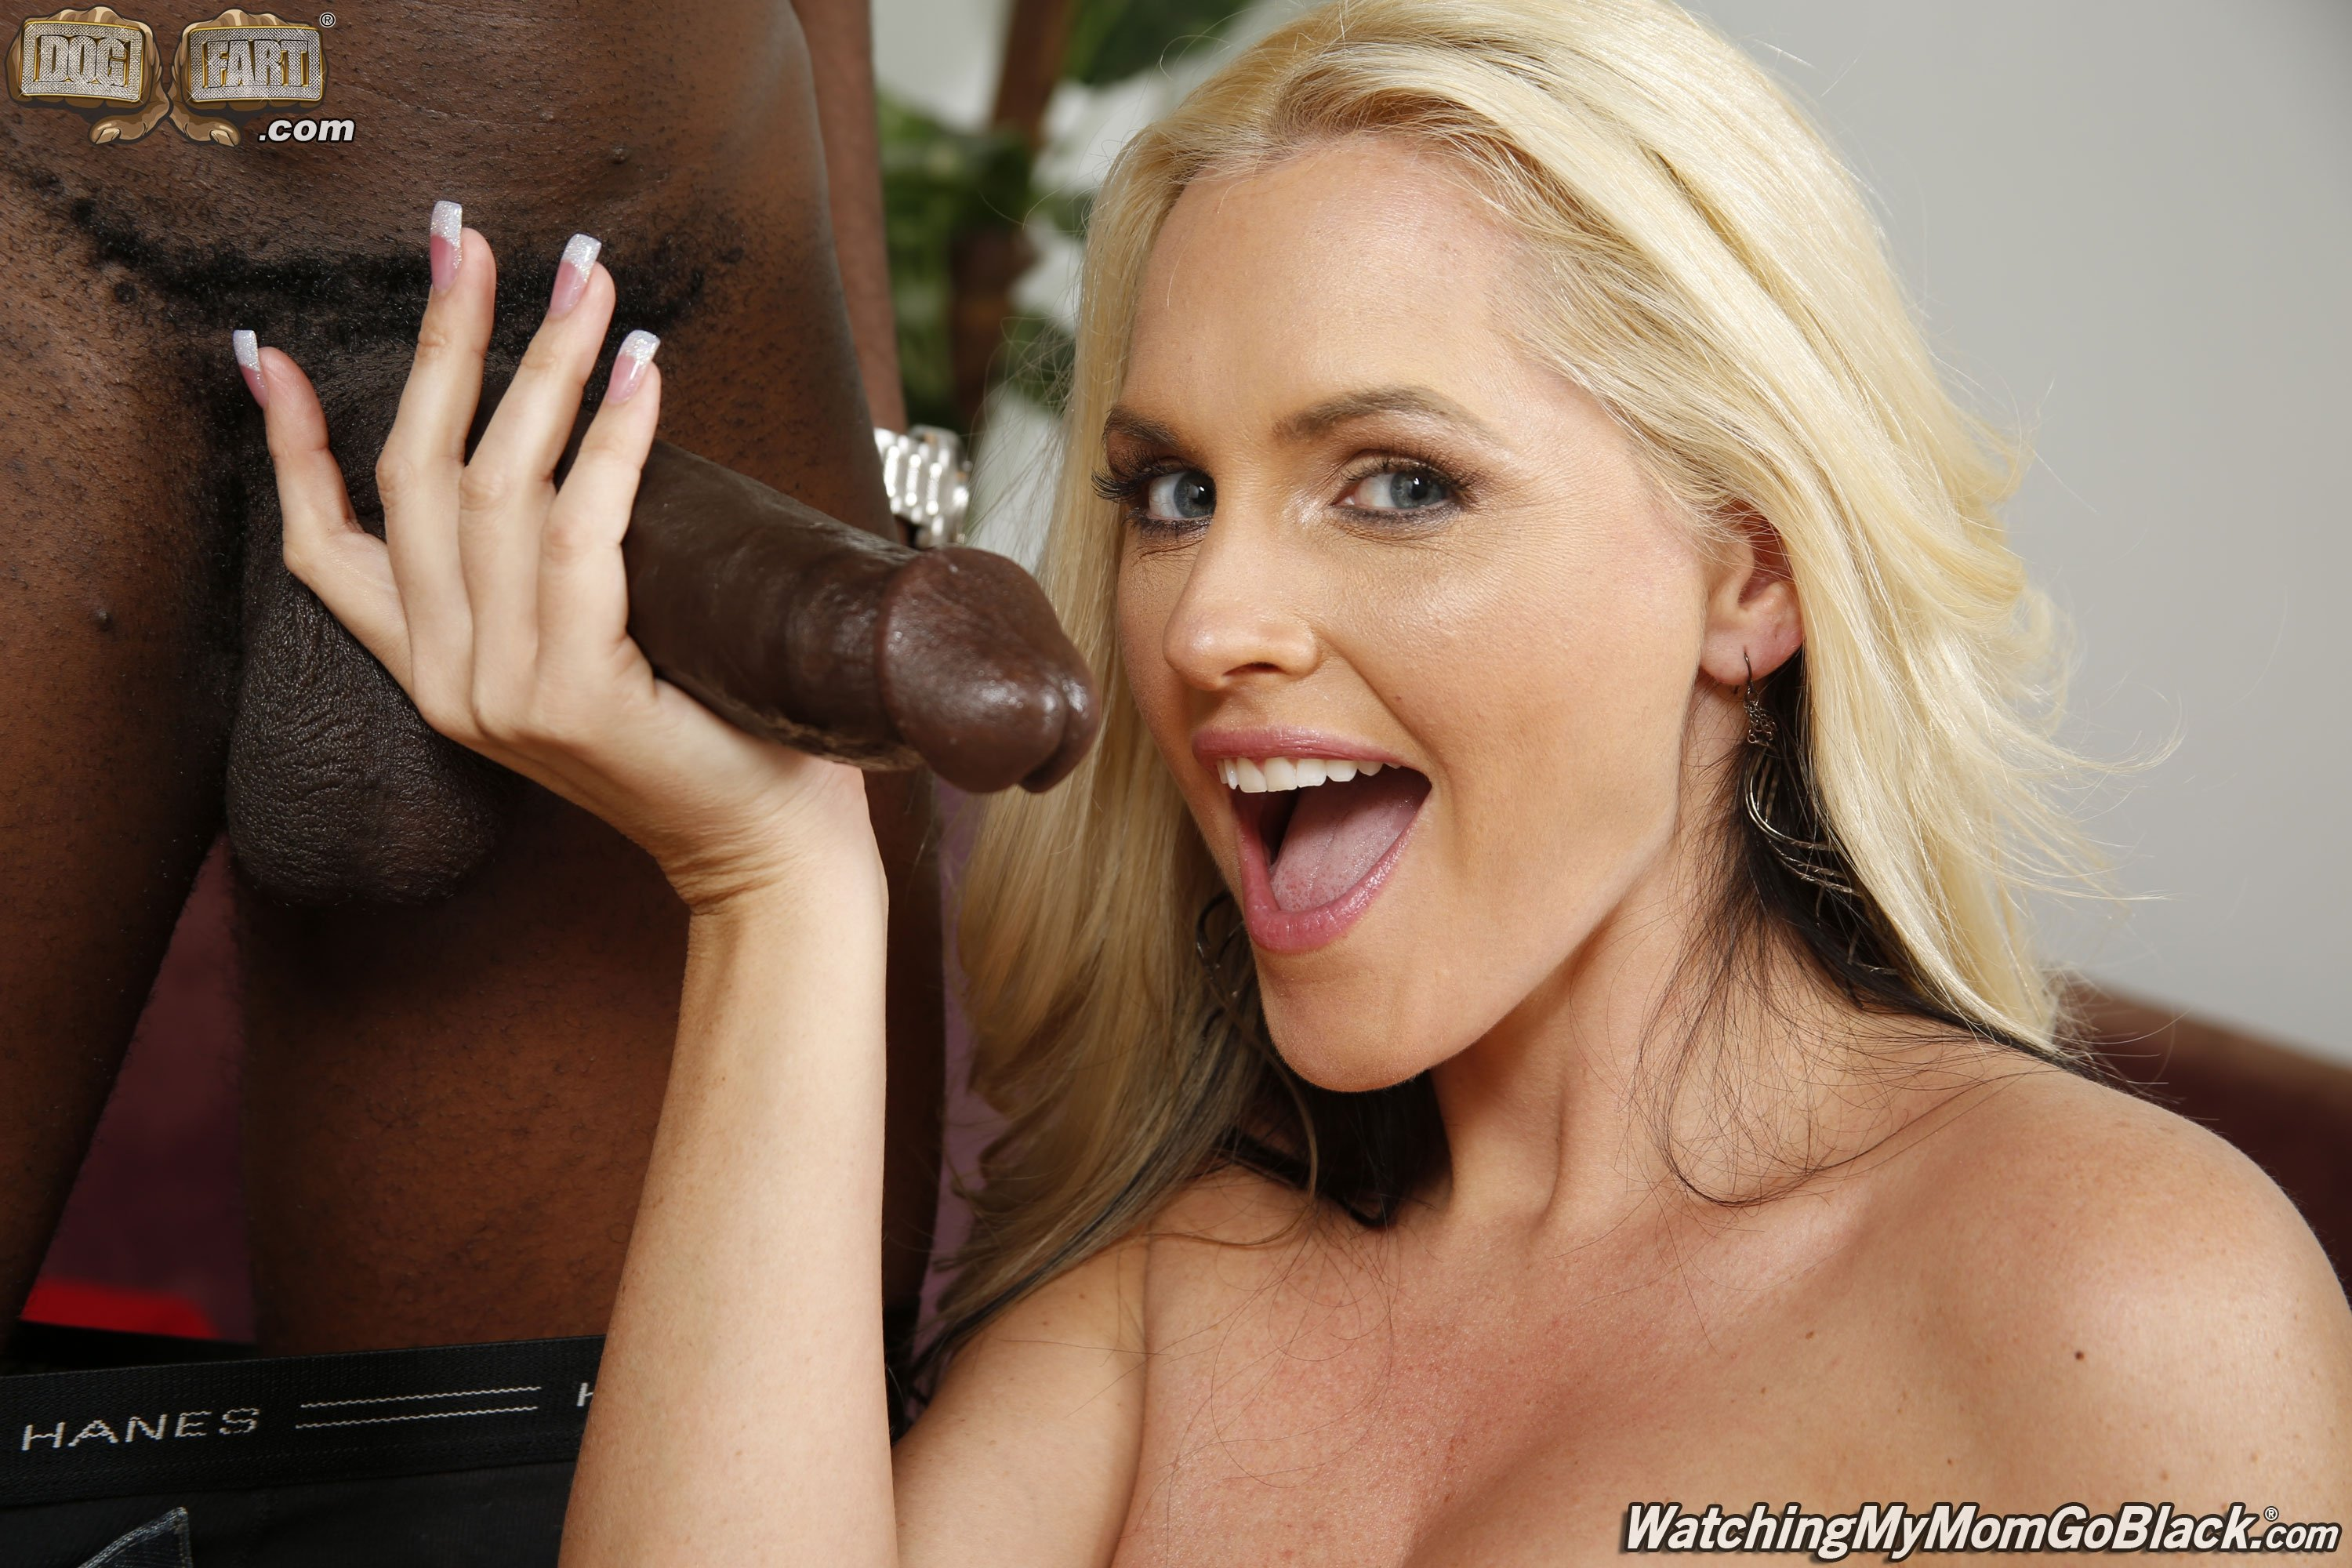 interracial ts tube add photo